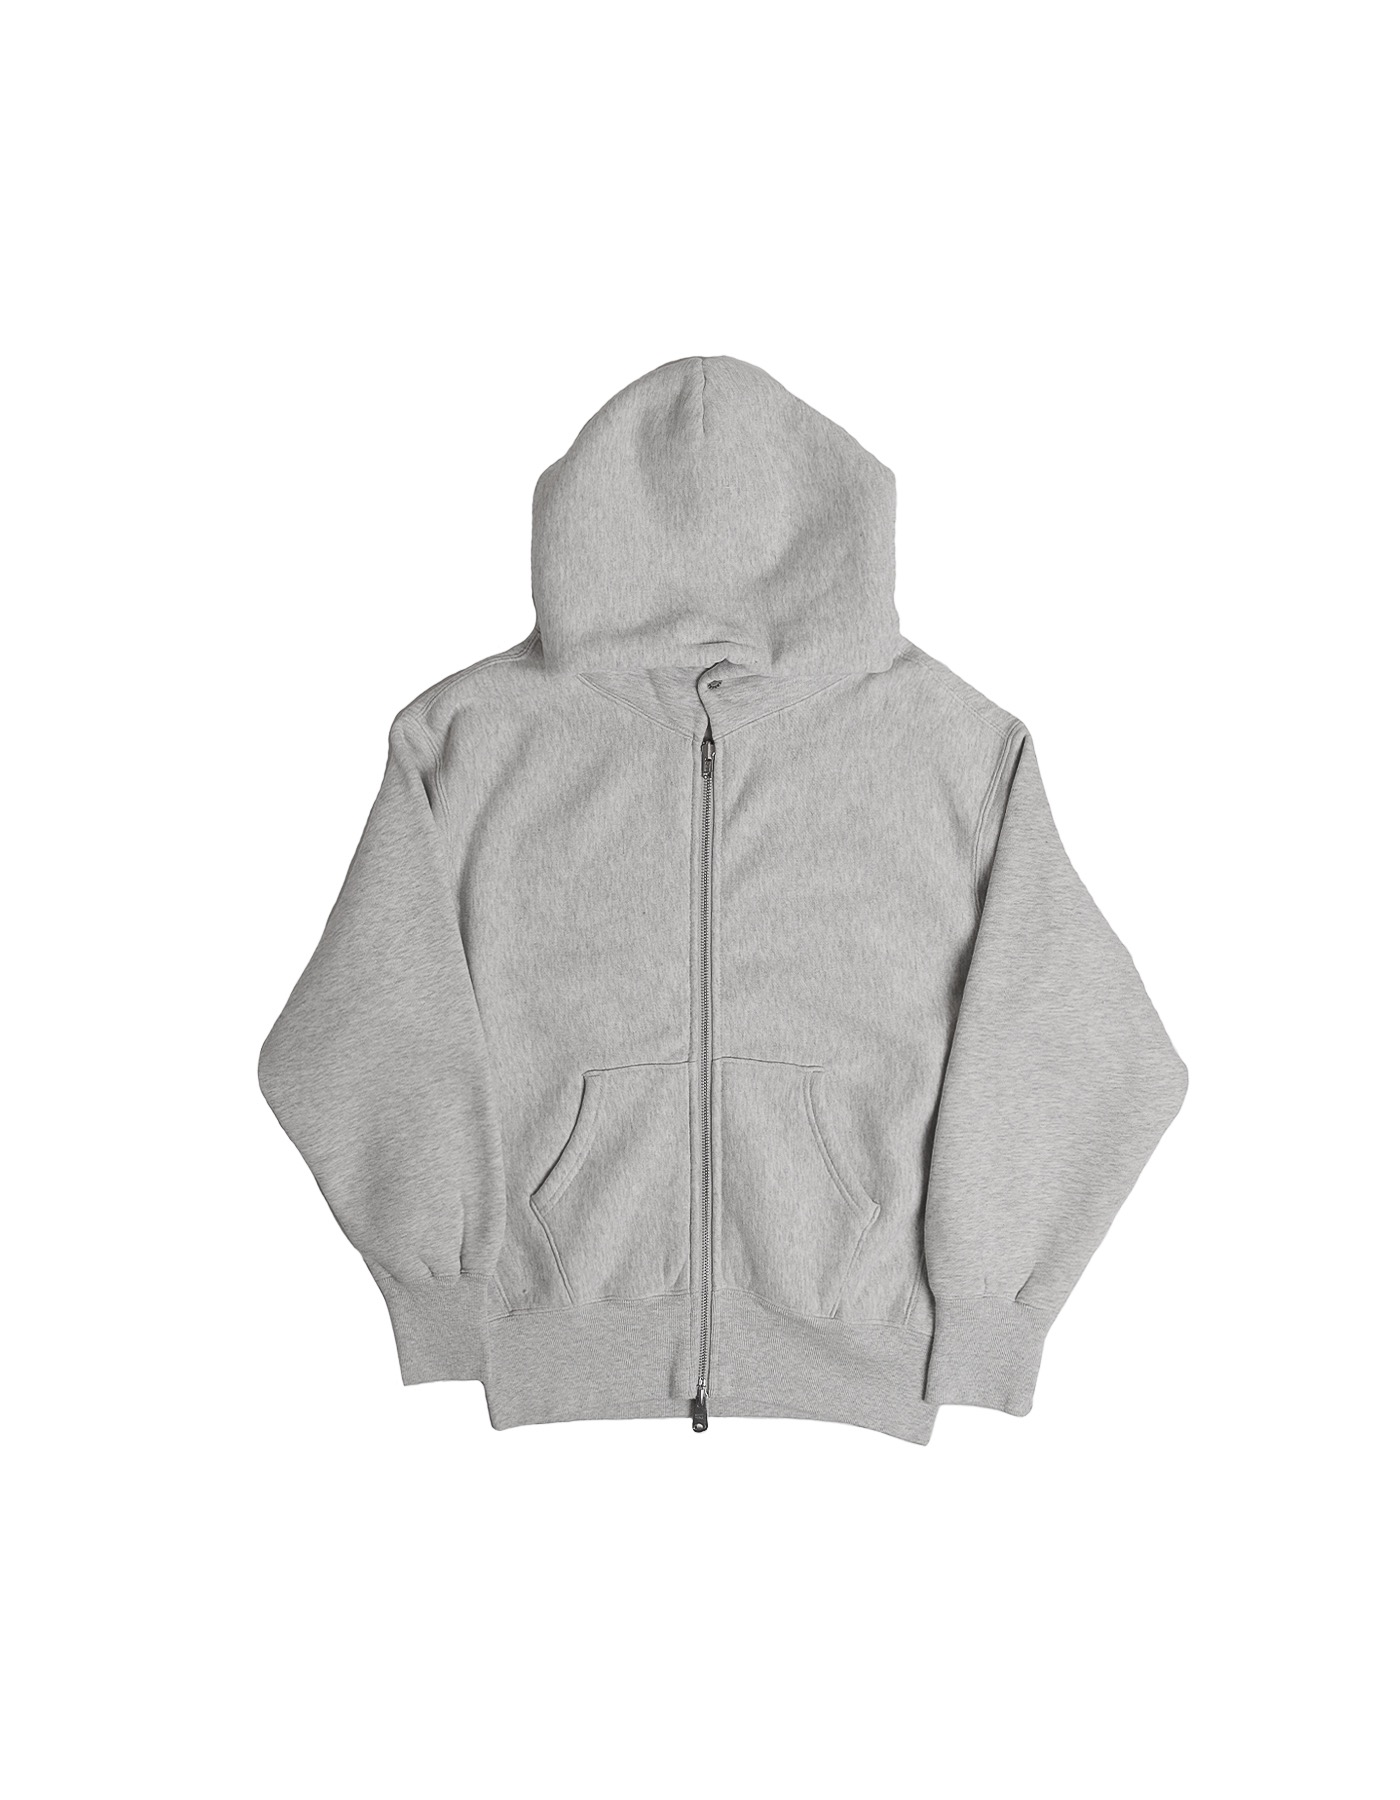 334 REVERSE FLEECE ZIP-UP HOODIE / M.GREY(1%)